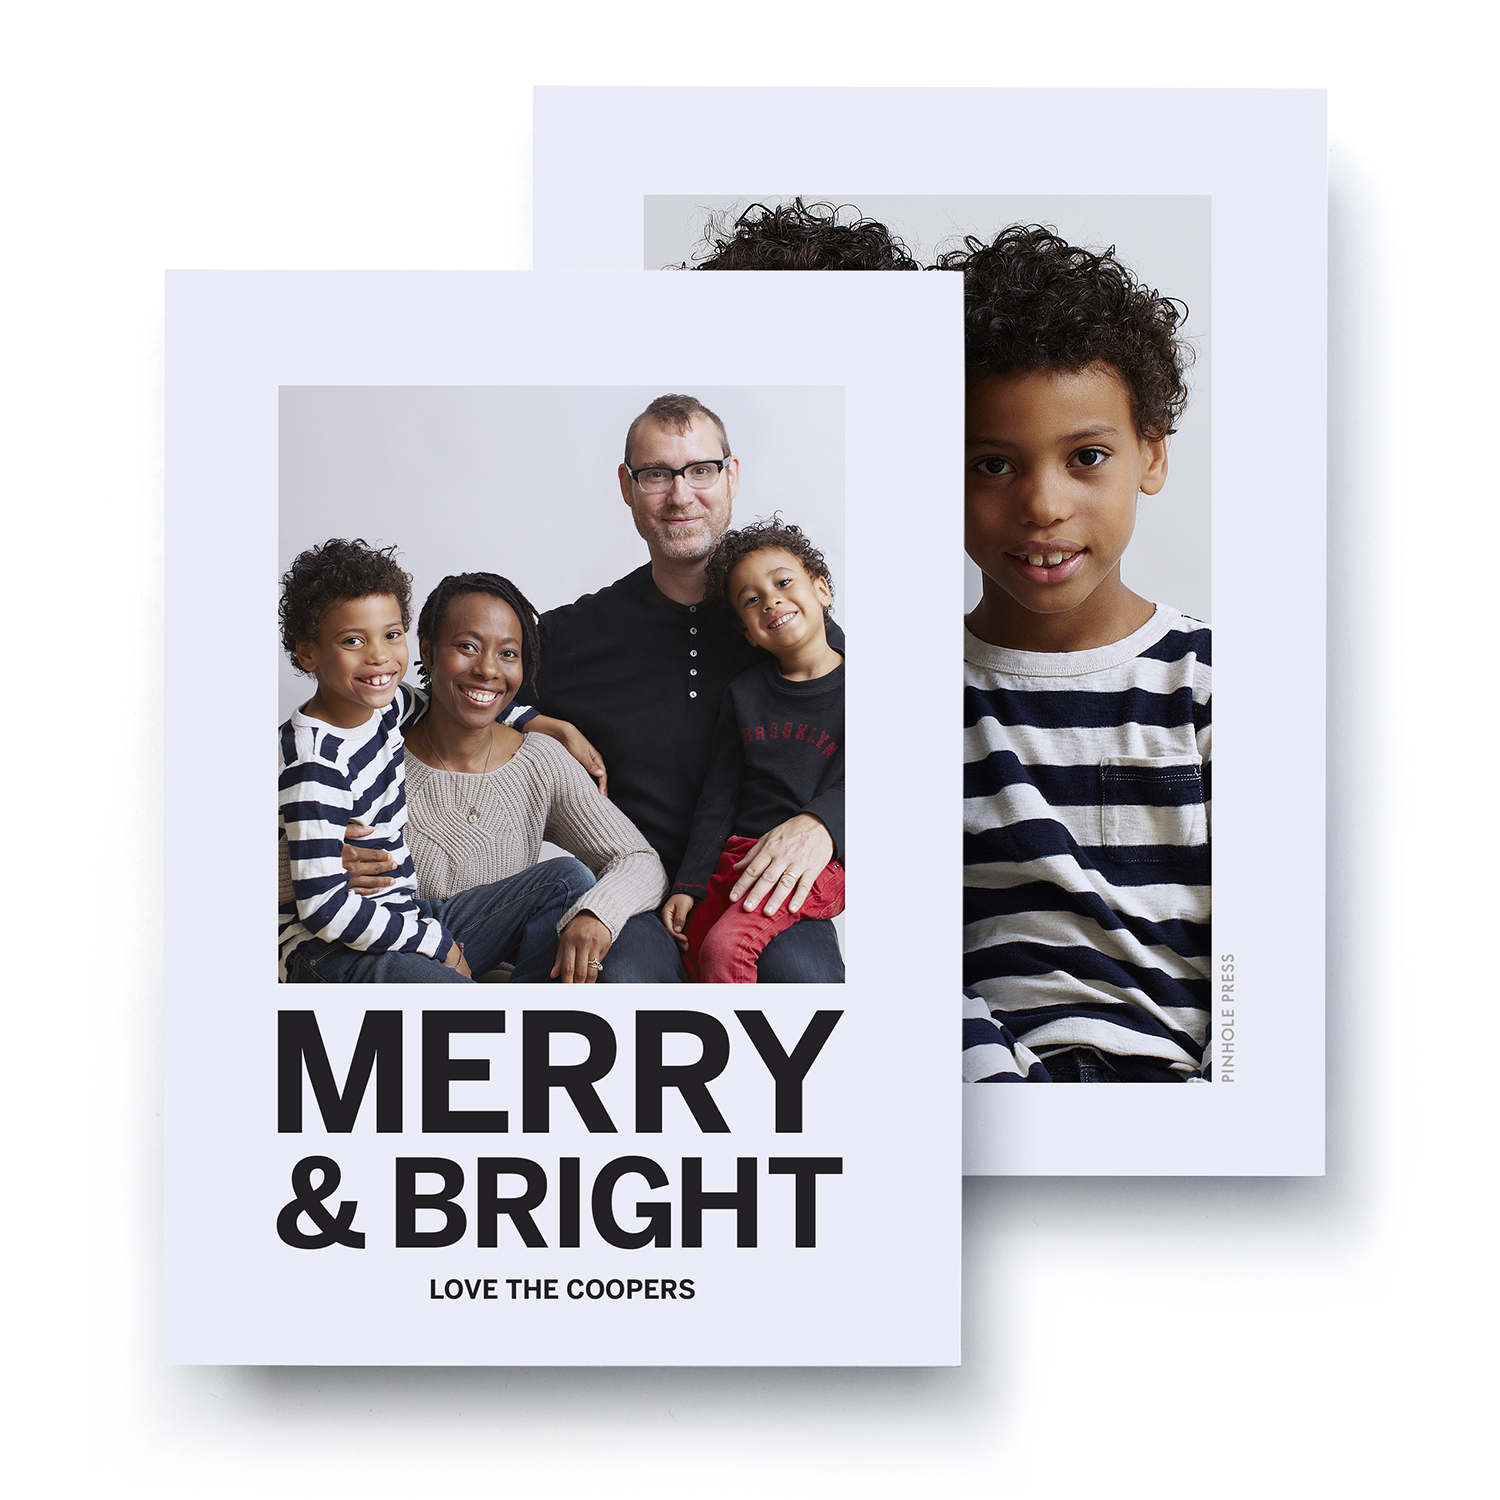 Merry-and-Bright-Holiday-Card.jpg